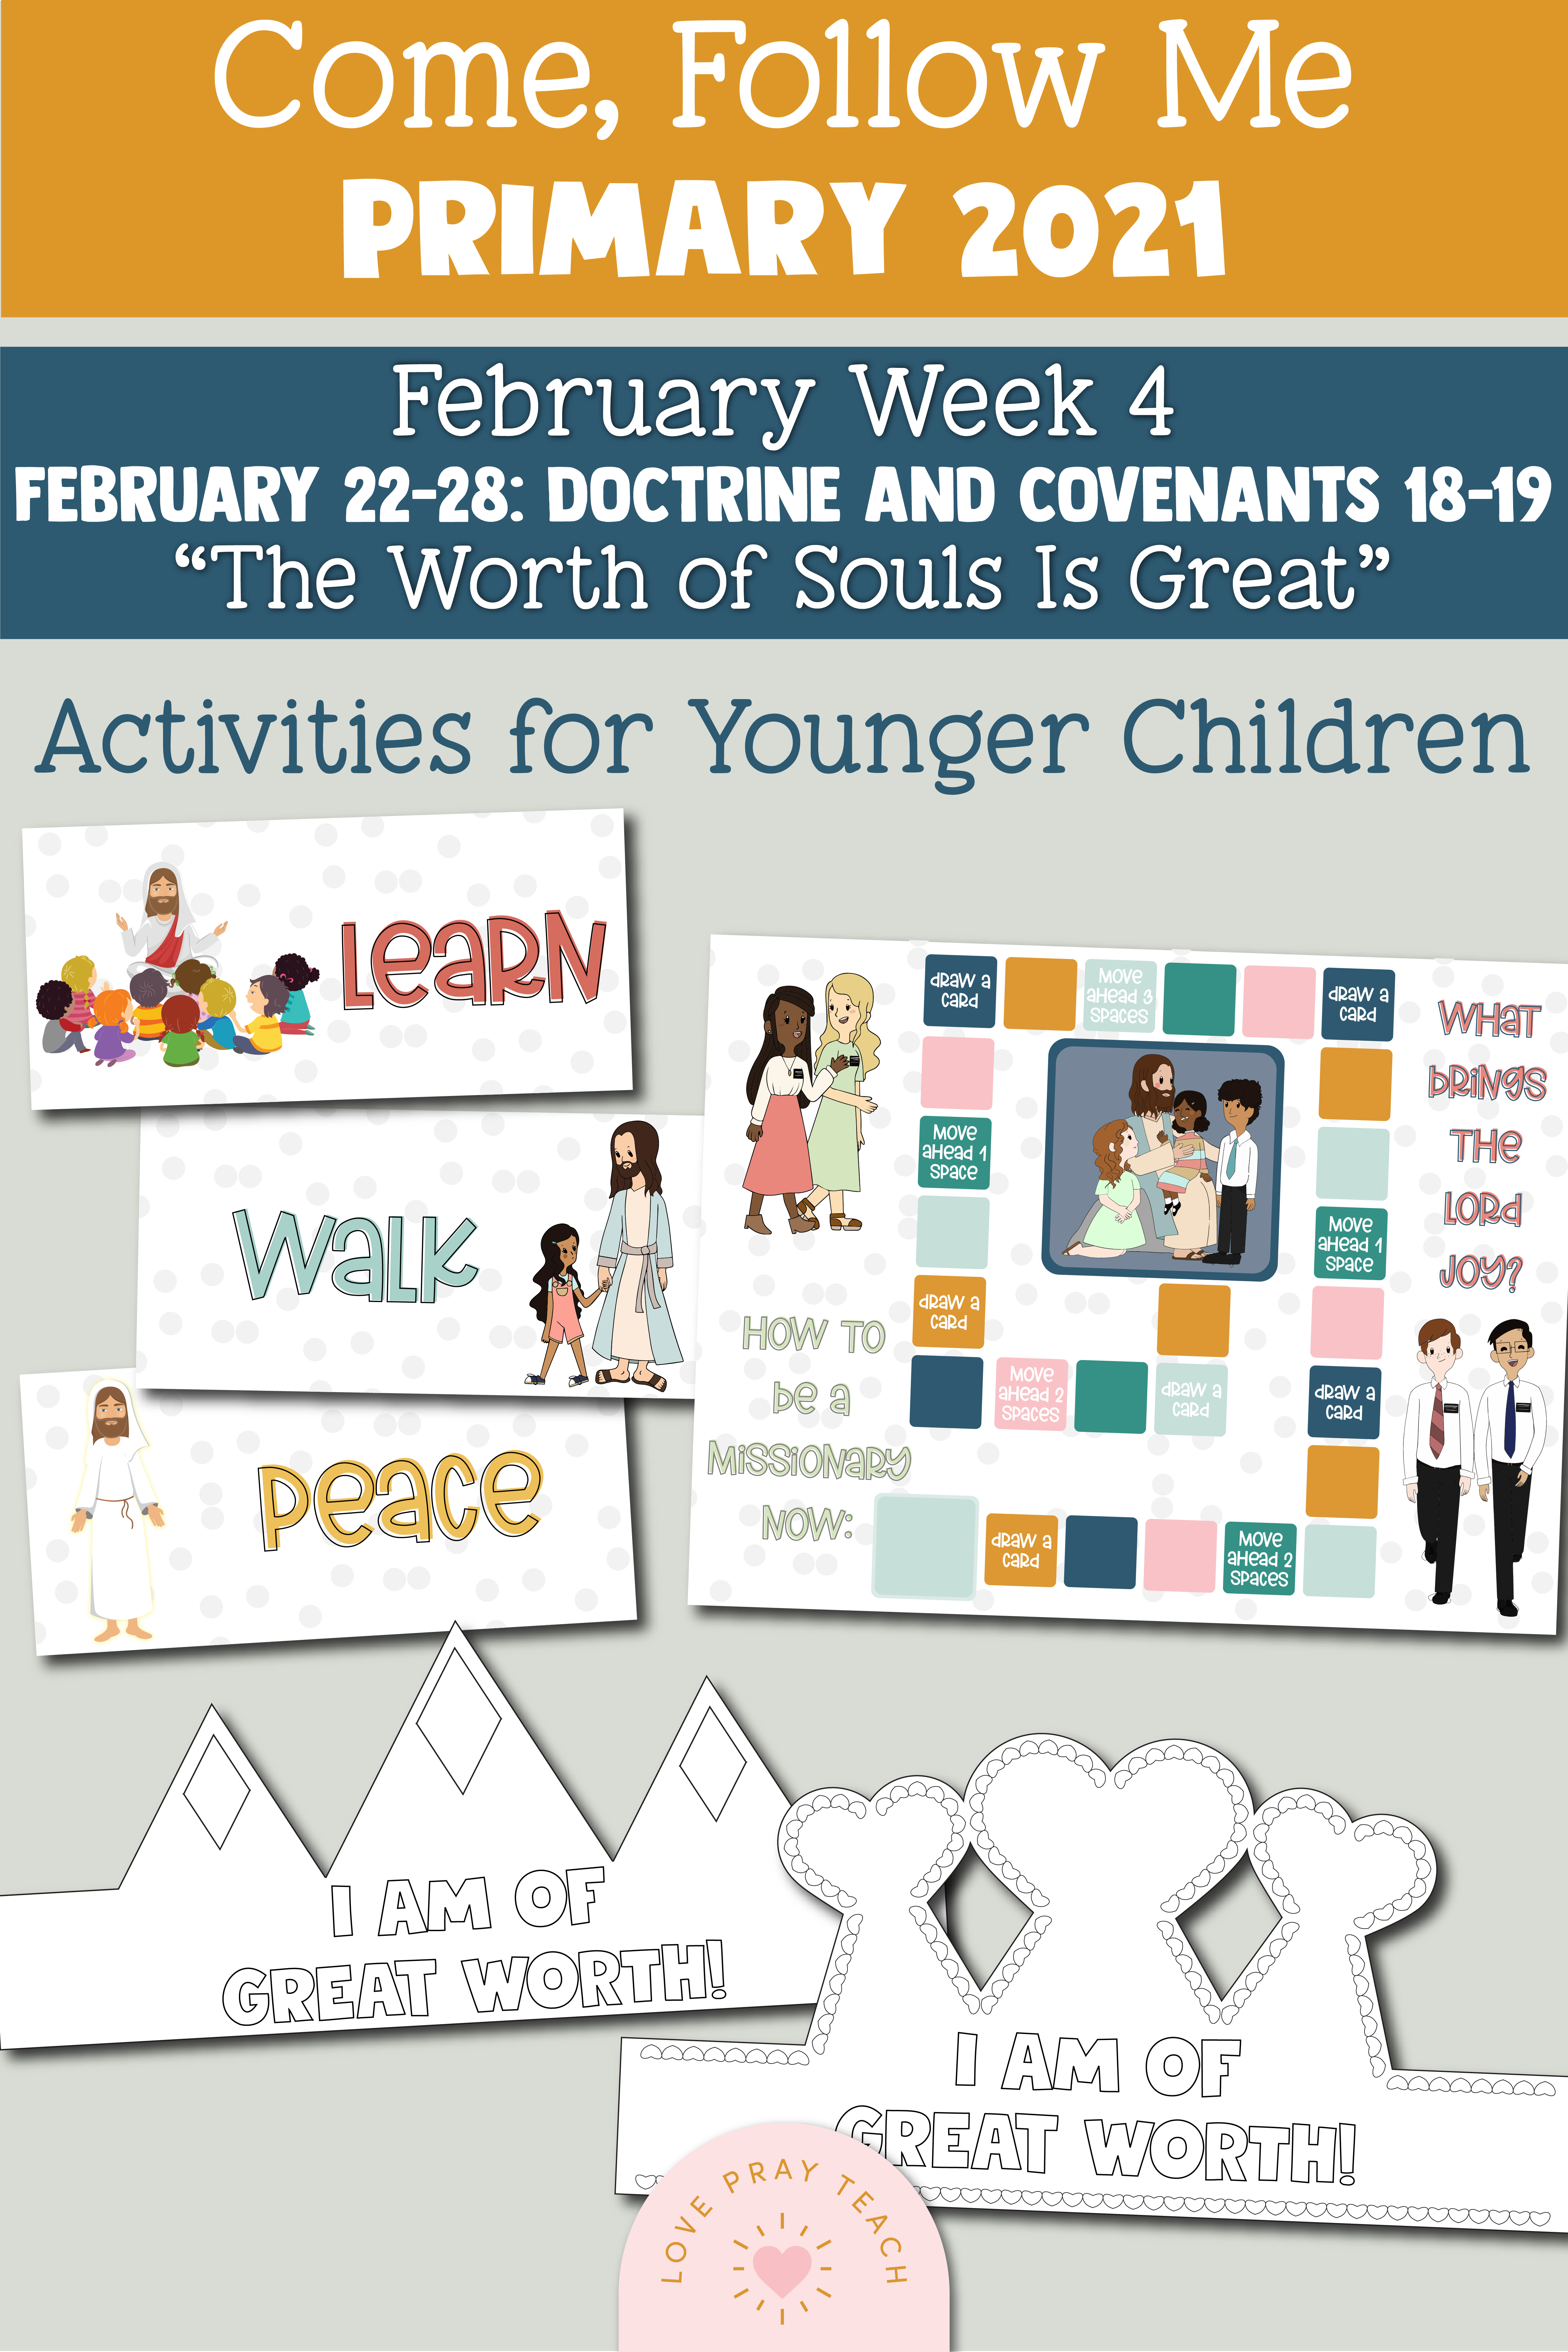 """Come, Follow Me for Primary 2021 February 22-28 Doctrine and Covenants 18-19 """"The Worth of Souls Is Great"""" Printable Lesson Materials"""